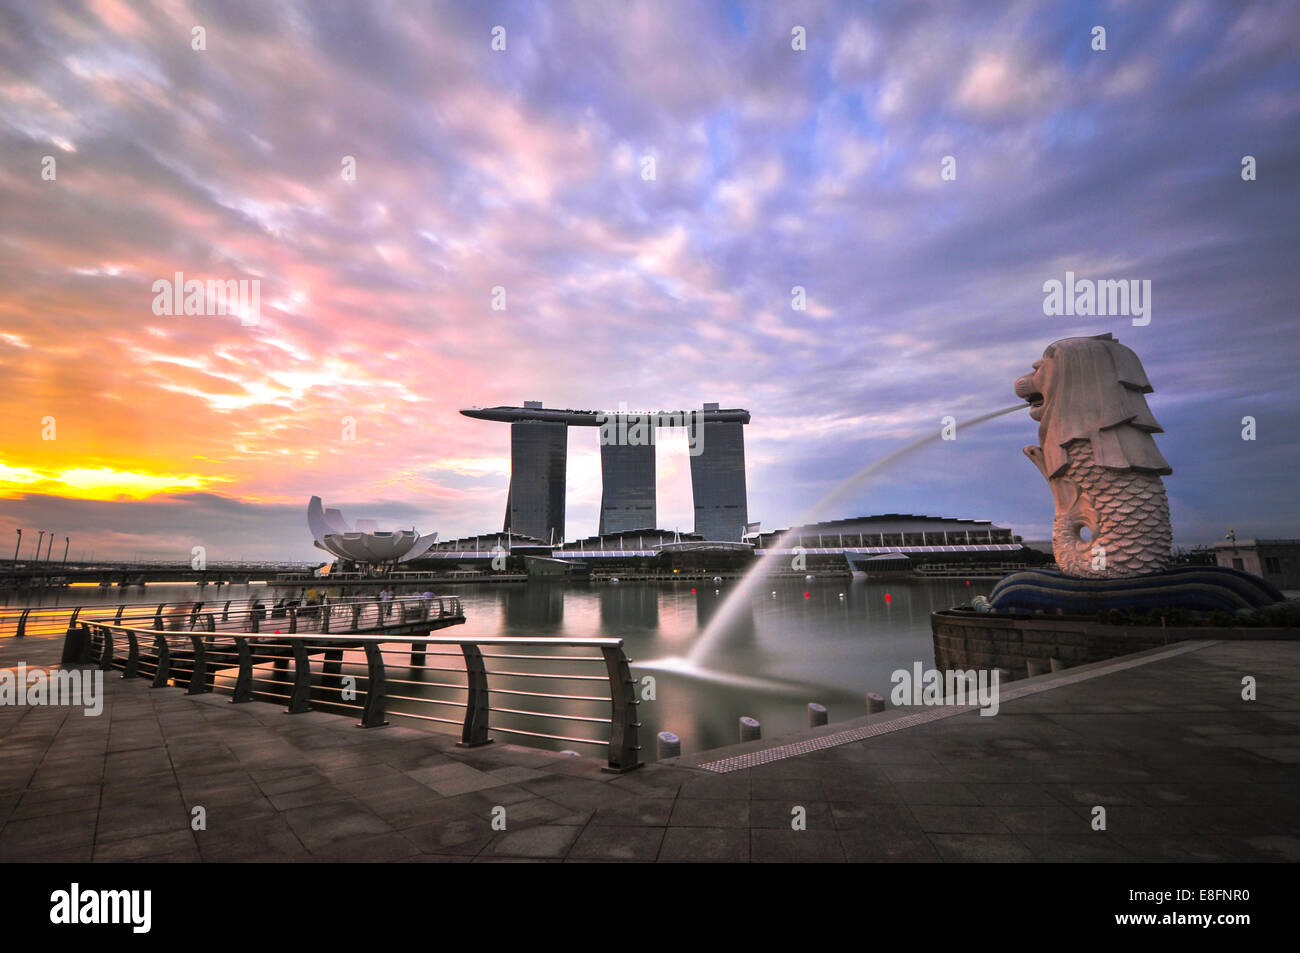 Singapour, Merlion, vue de la statue du Merlion Photo Stock